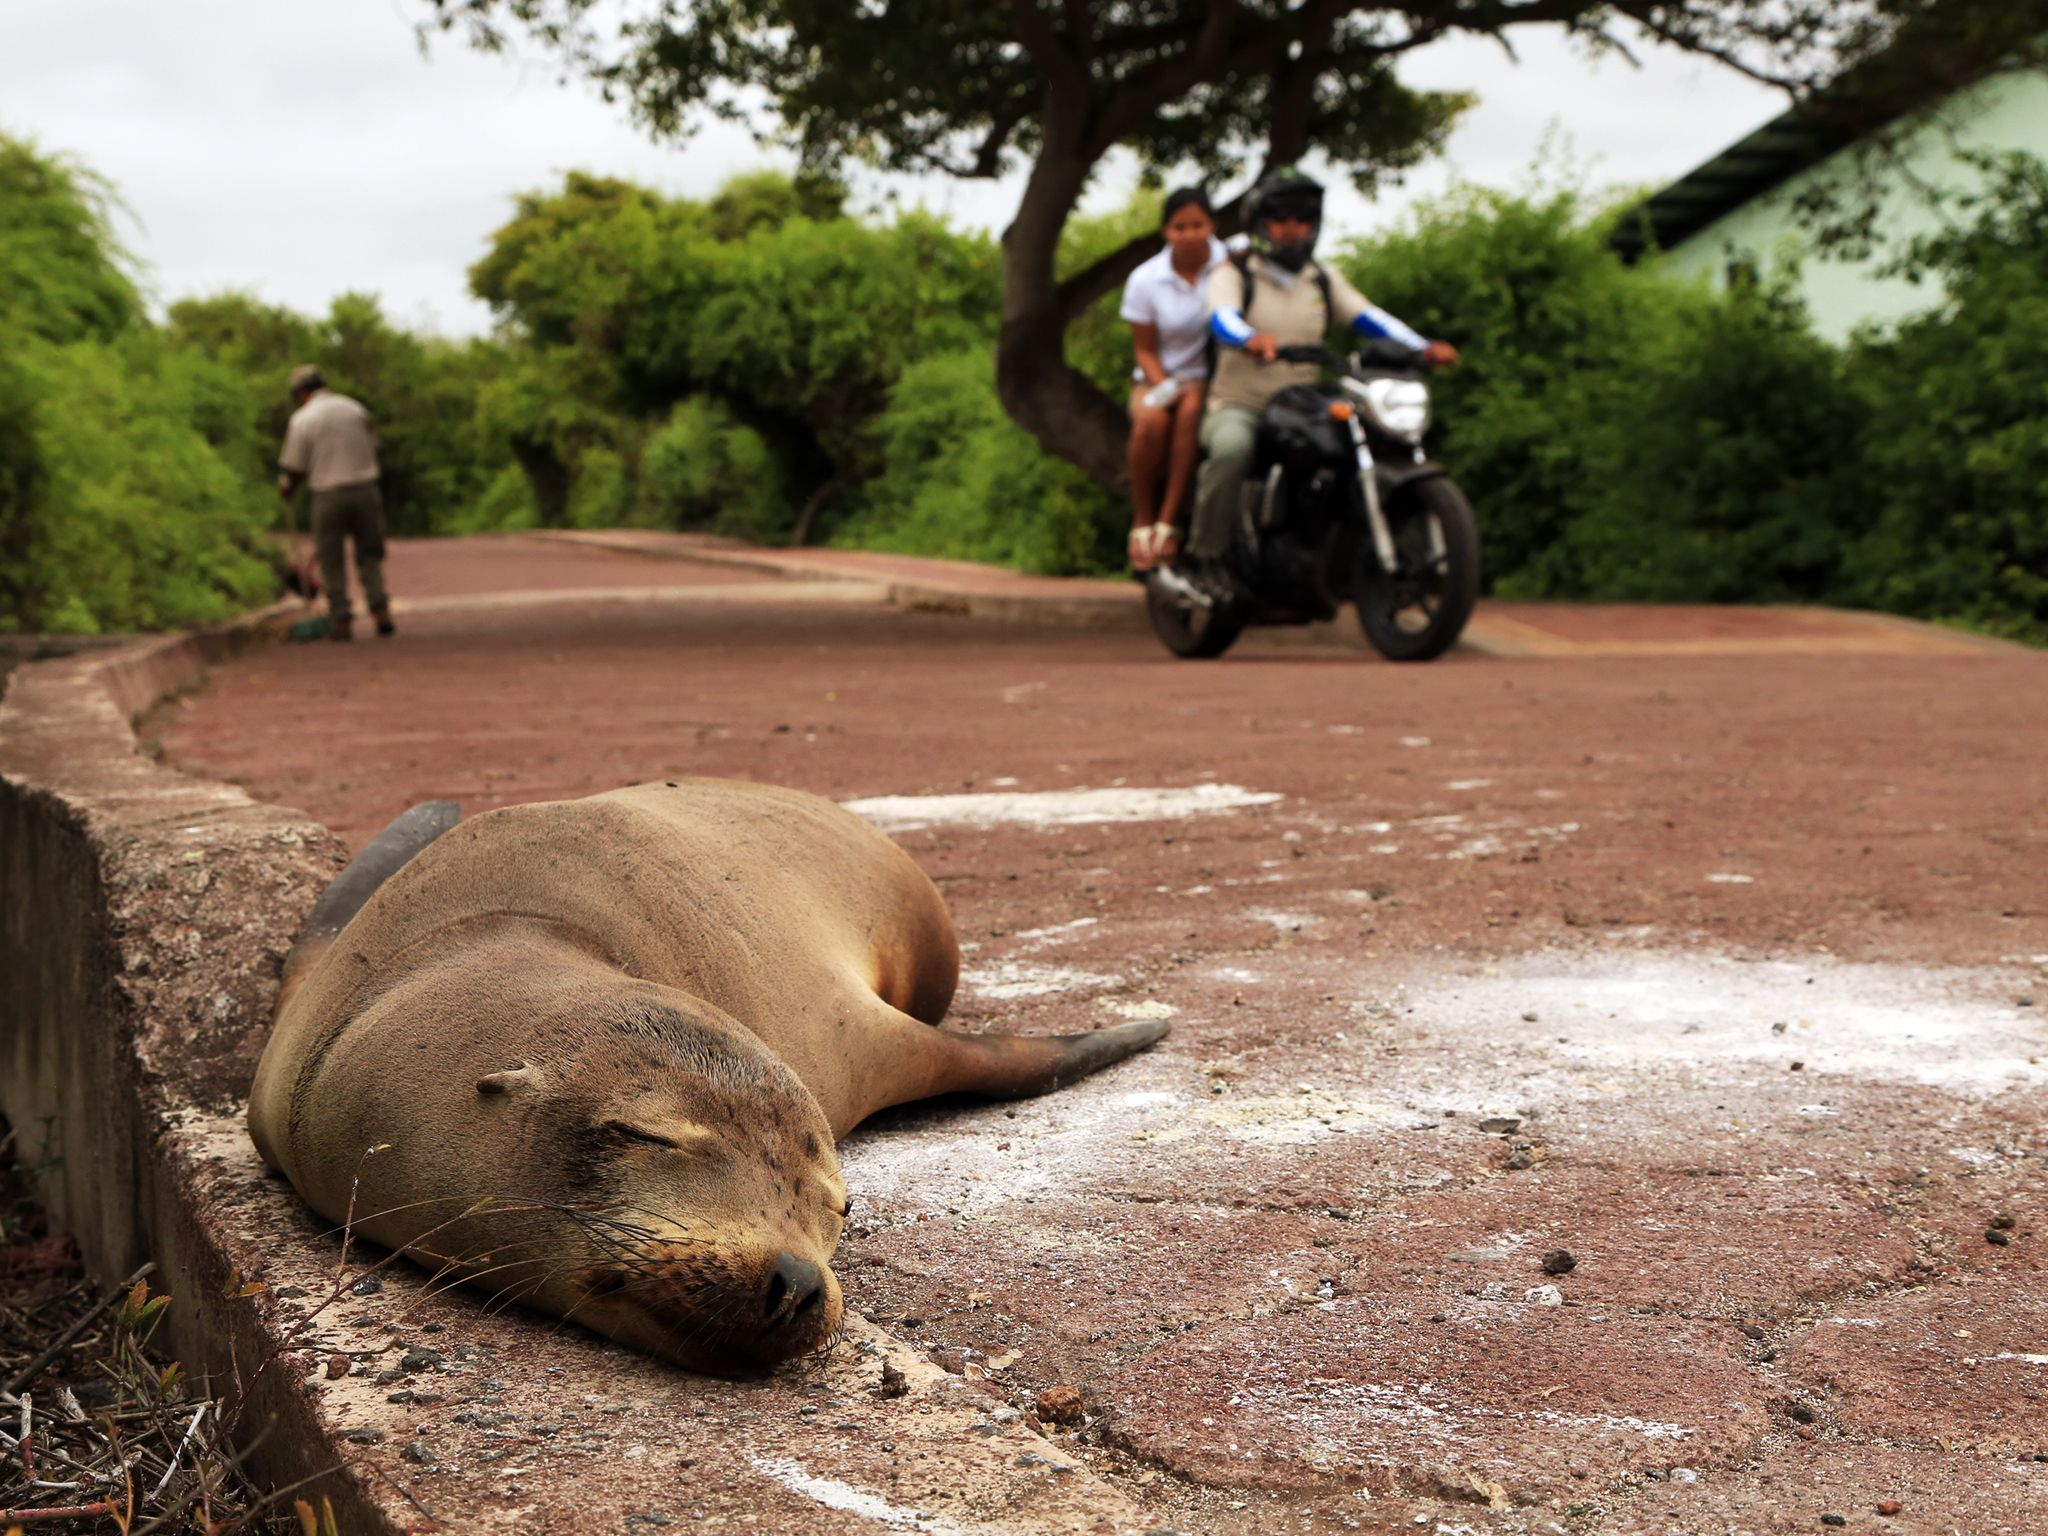 Puerto Ayora, Santa Cruz Island, Galapagos, Ecuador: A sea lion sleeps on the road at Galapagos... [Photo of the day - December 2014]